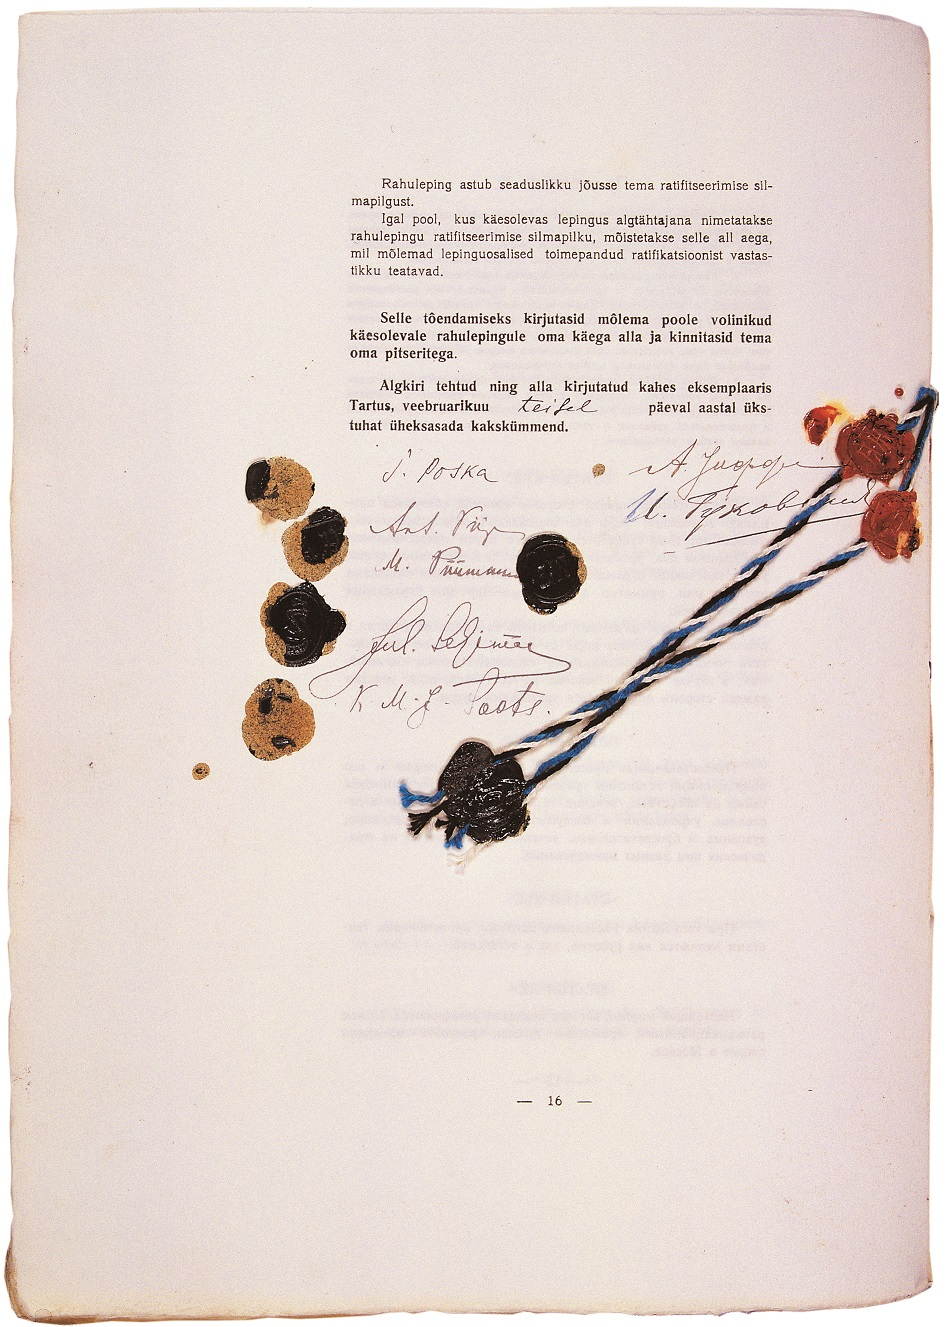 Signings of Tartu Peace Treaty. Photo: National Archives of Estonia